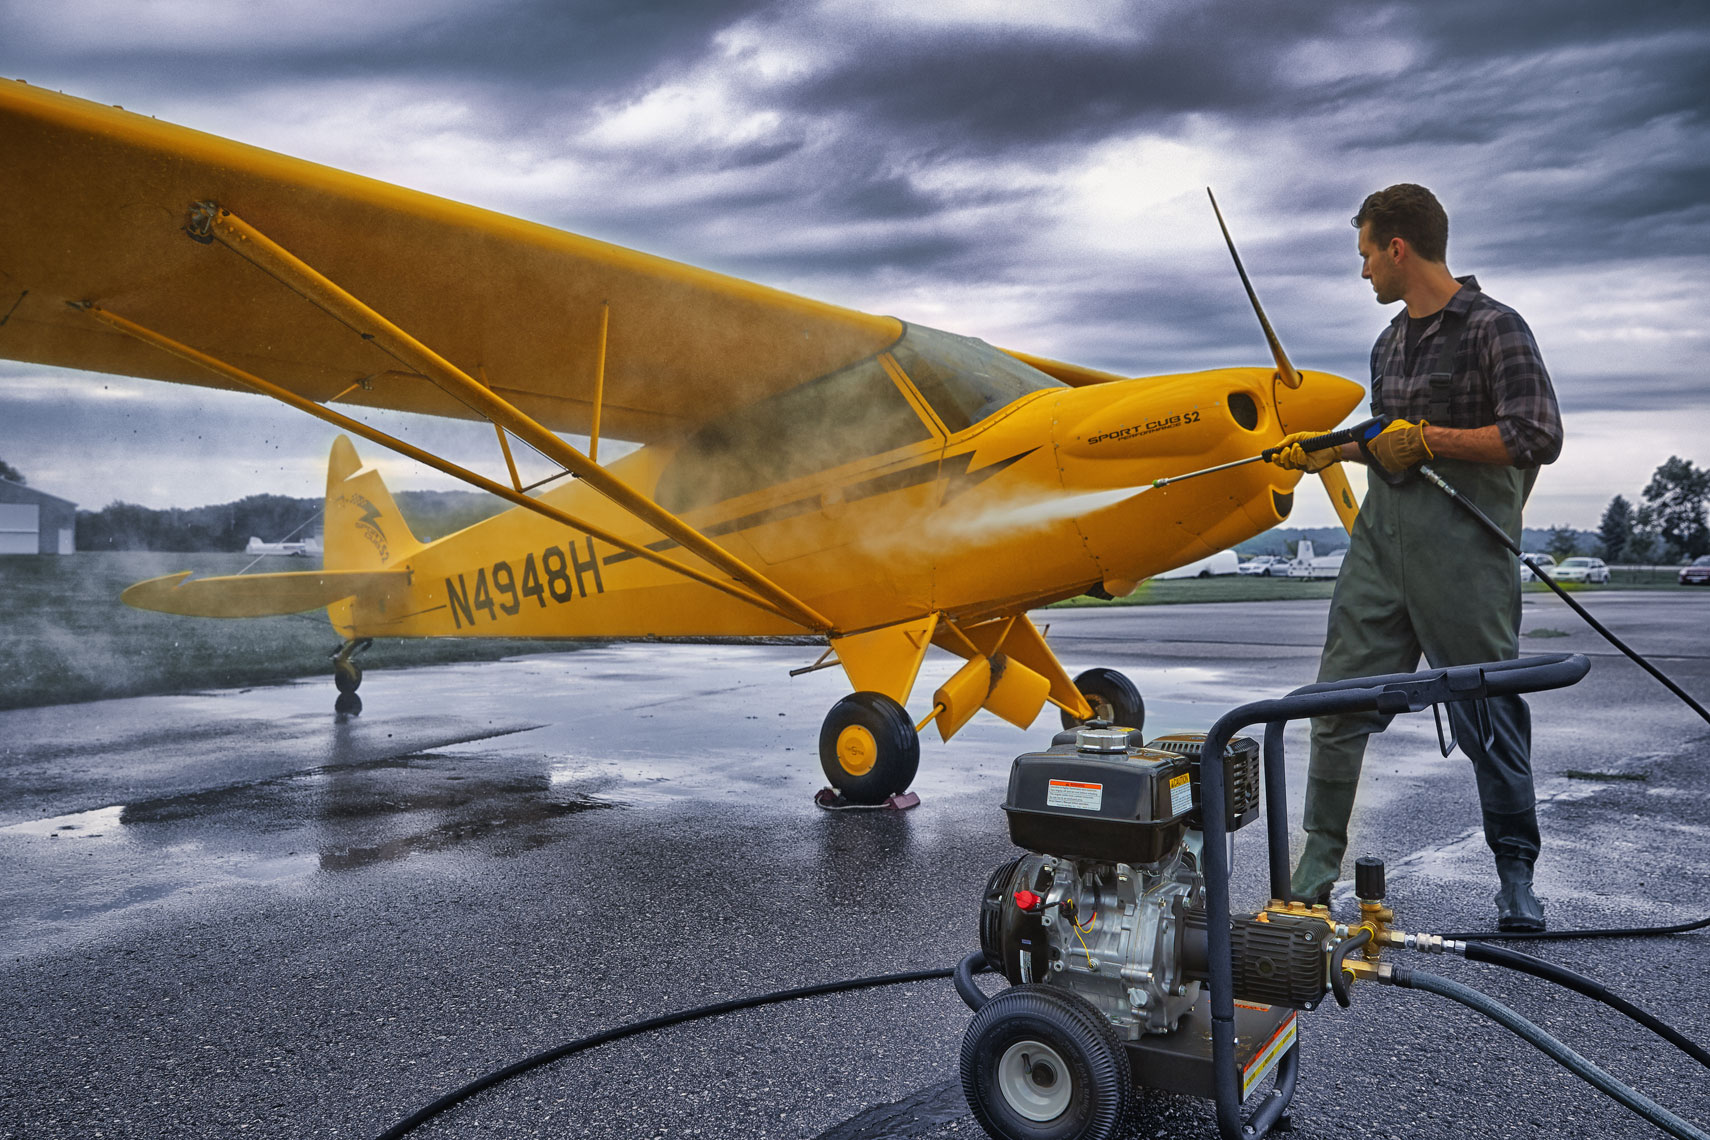 Powerwashing plane/yellow/location photography